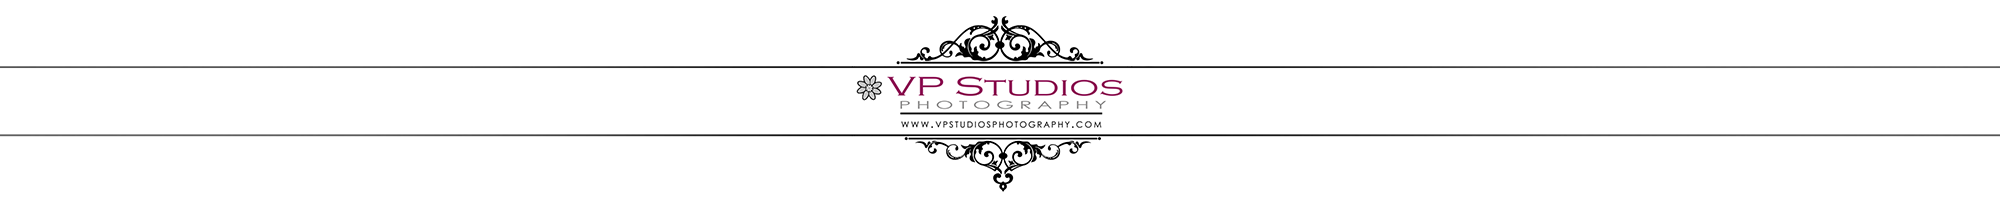 VP Studios Photography - Burlington  Wedding Photographer serving Oakville, Toronto, Cambridge, Ancaster, Niagara and the GTA.